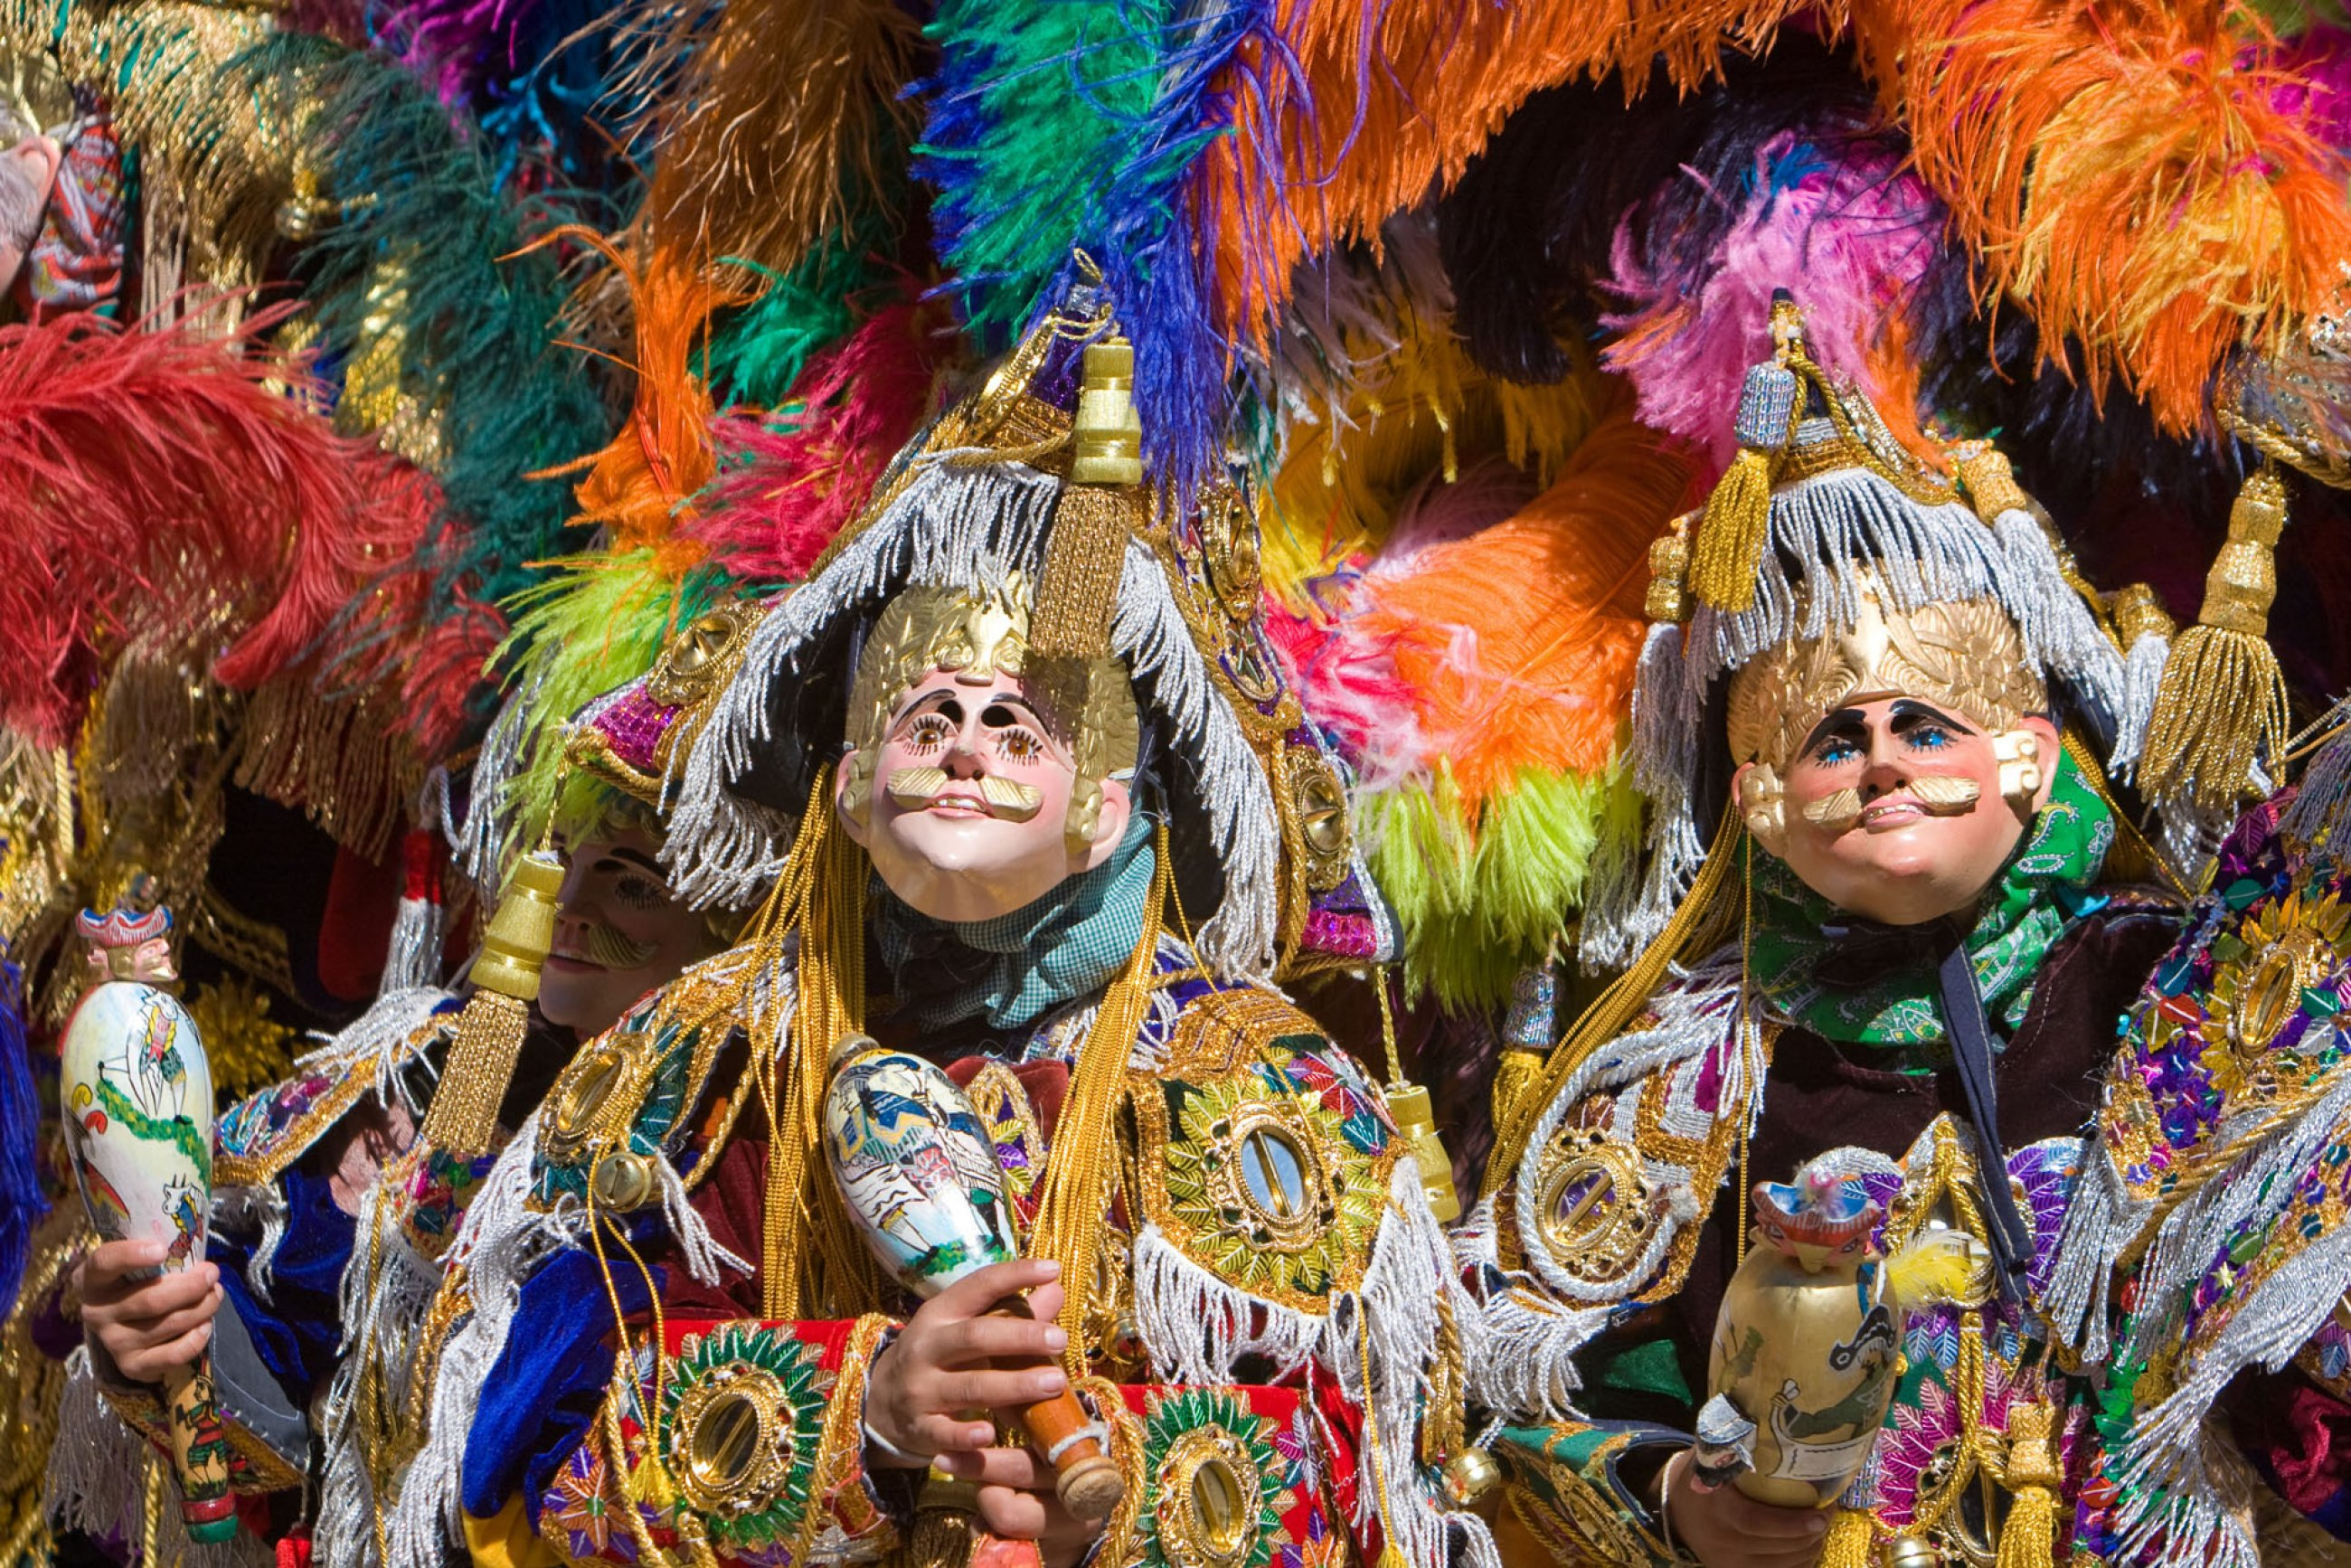 https://bubo.sk/uploads/galleries/7388/guatemala-the-locals-of-small-highland-town-of-chichicastenango-dress-up-to-celebrate-the-festa-of-san-tomas.jpg